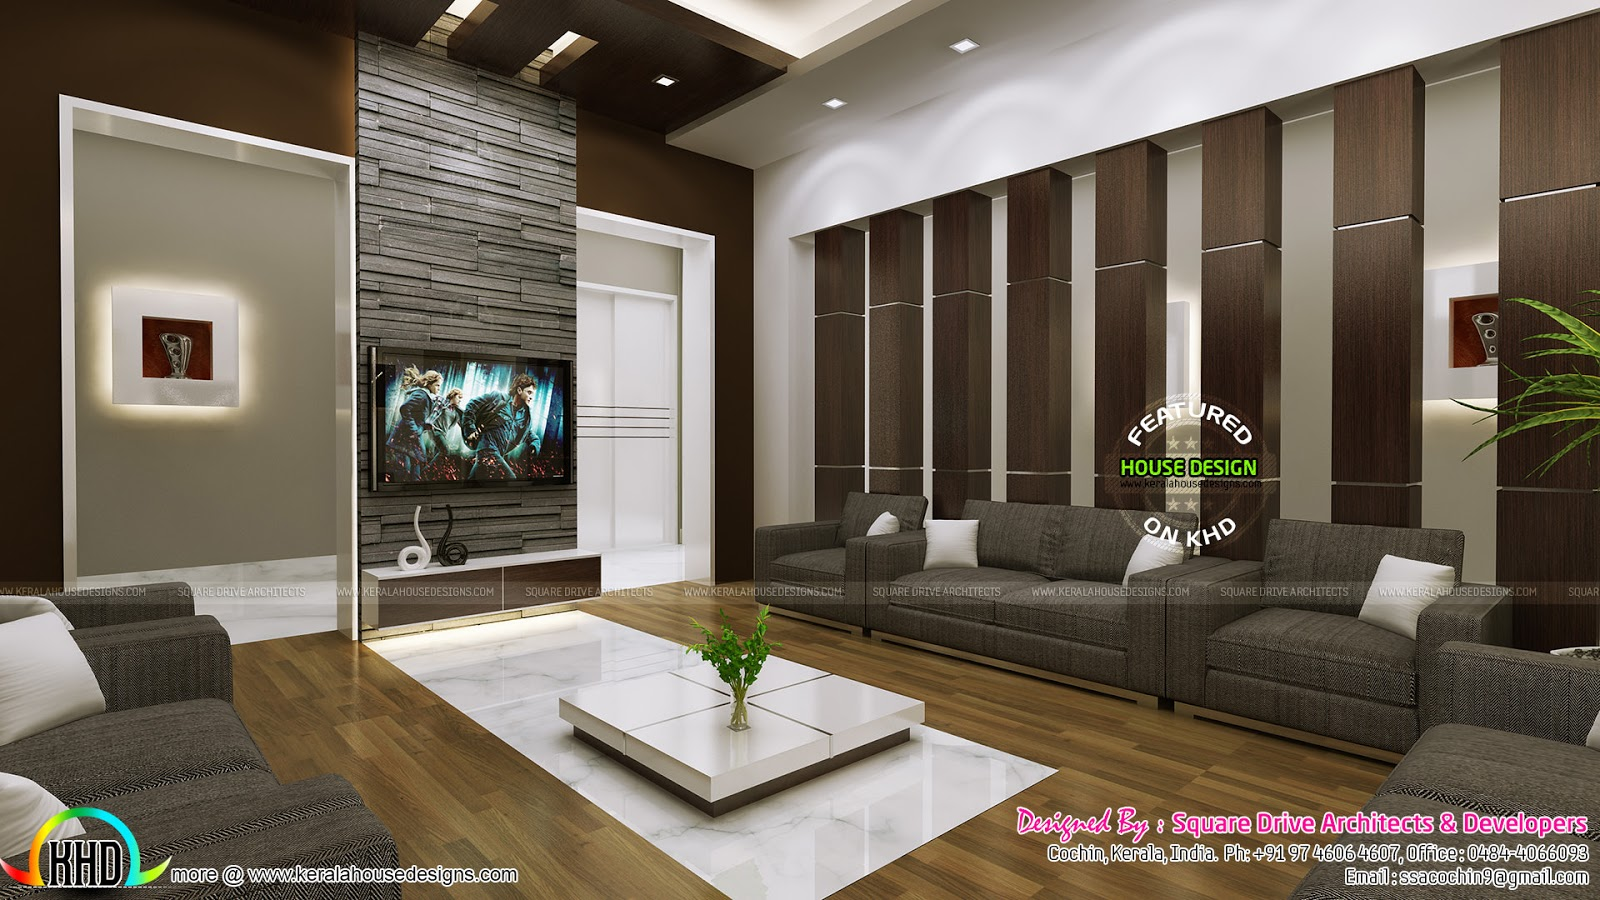 Very beautiful modern interior designs kerala home for Living room design ideas kerala